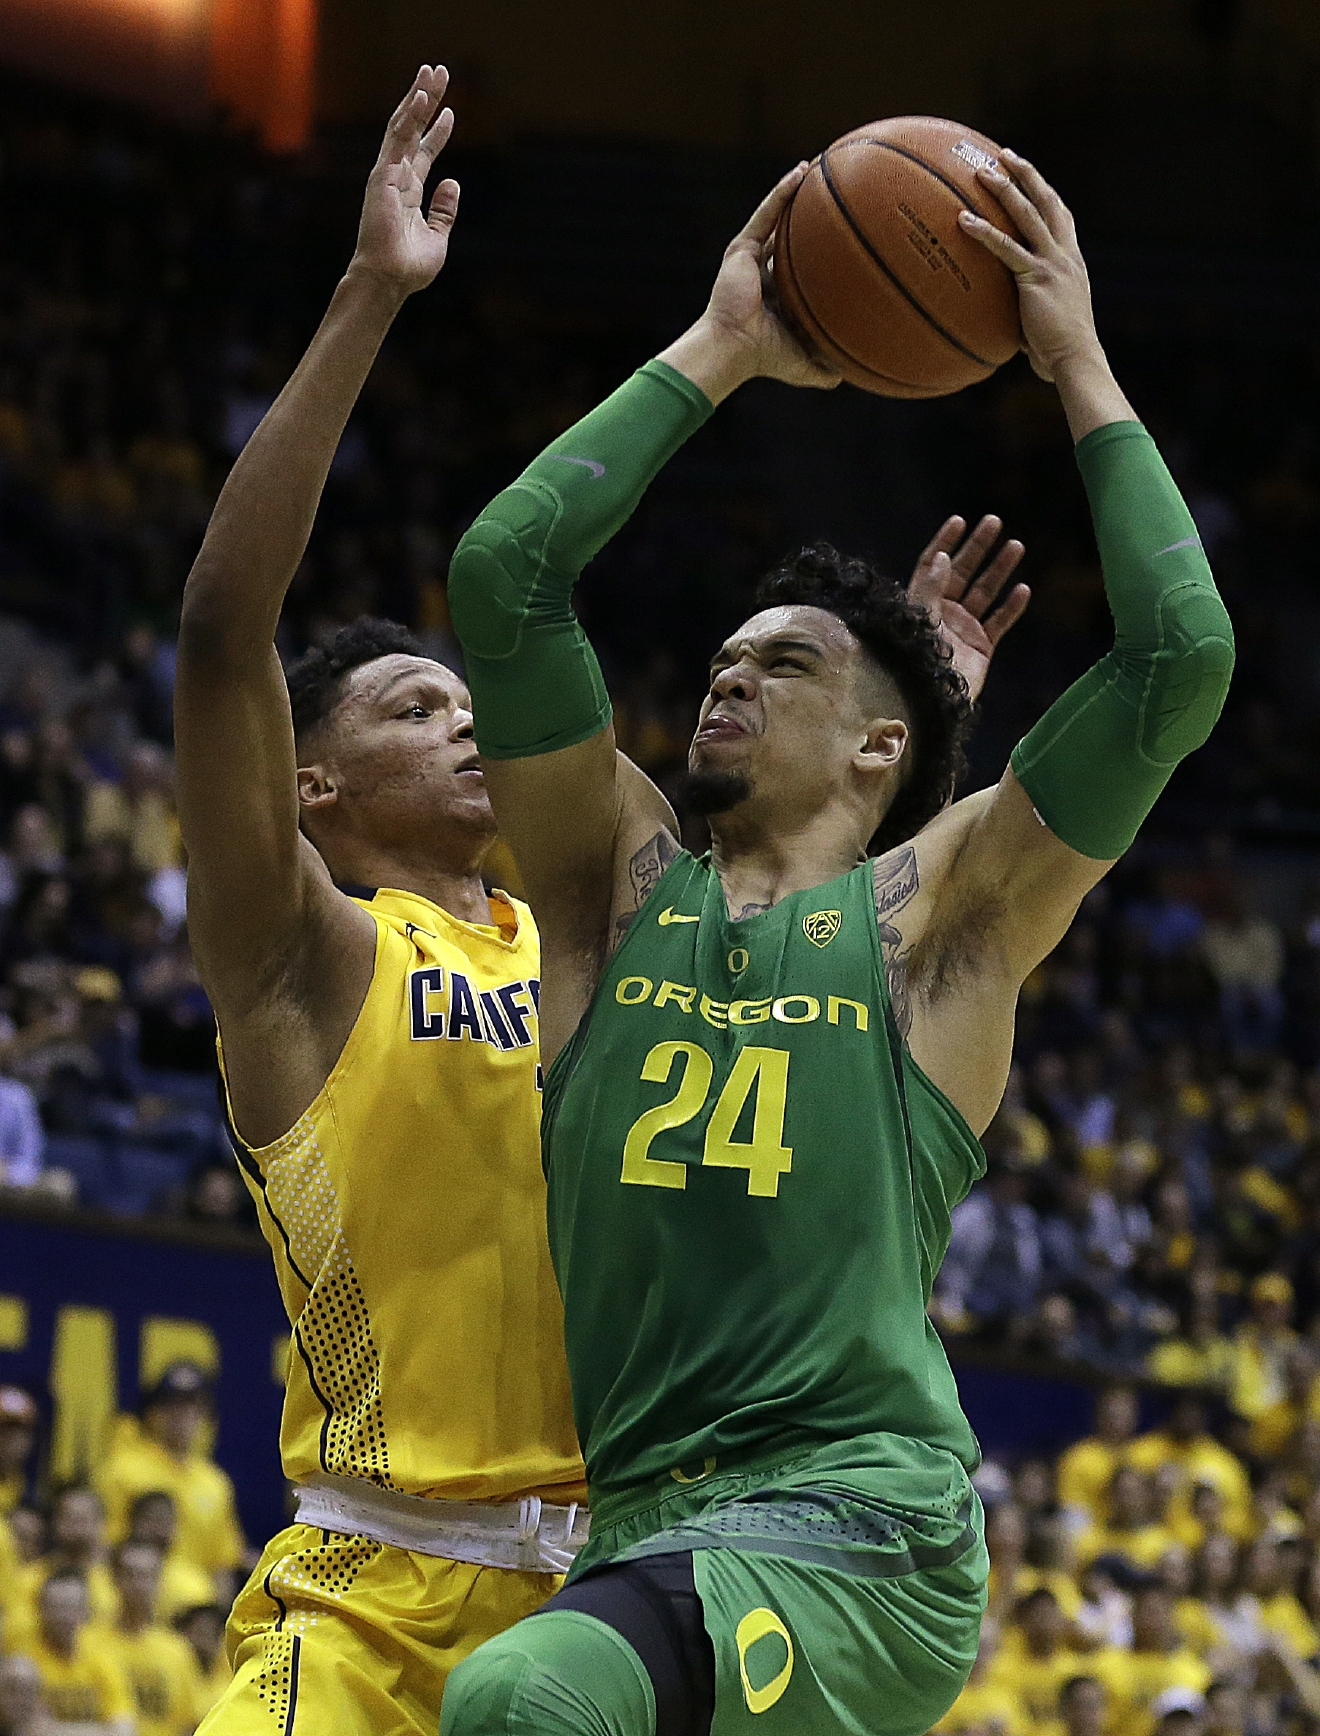 Oregon's Dillon Brooks (24) shoots against California's Ivan Rabb, left, in the first half of an NCAA college basketball game Wednesday, Feb. 22, 2017, in Berkeley, Calif. (AP Photo/Ben Margot)